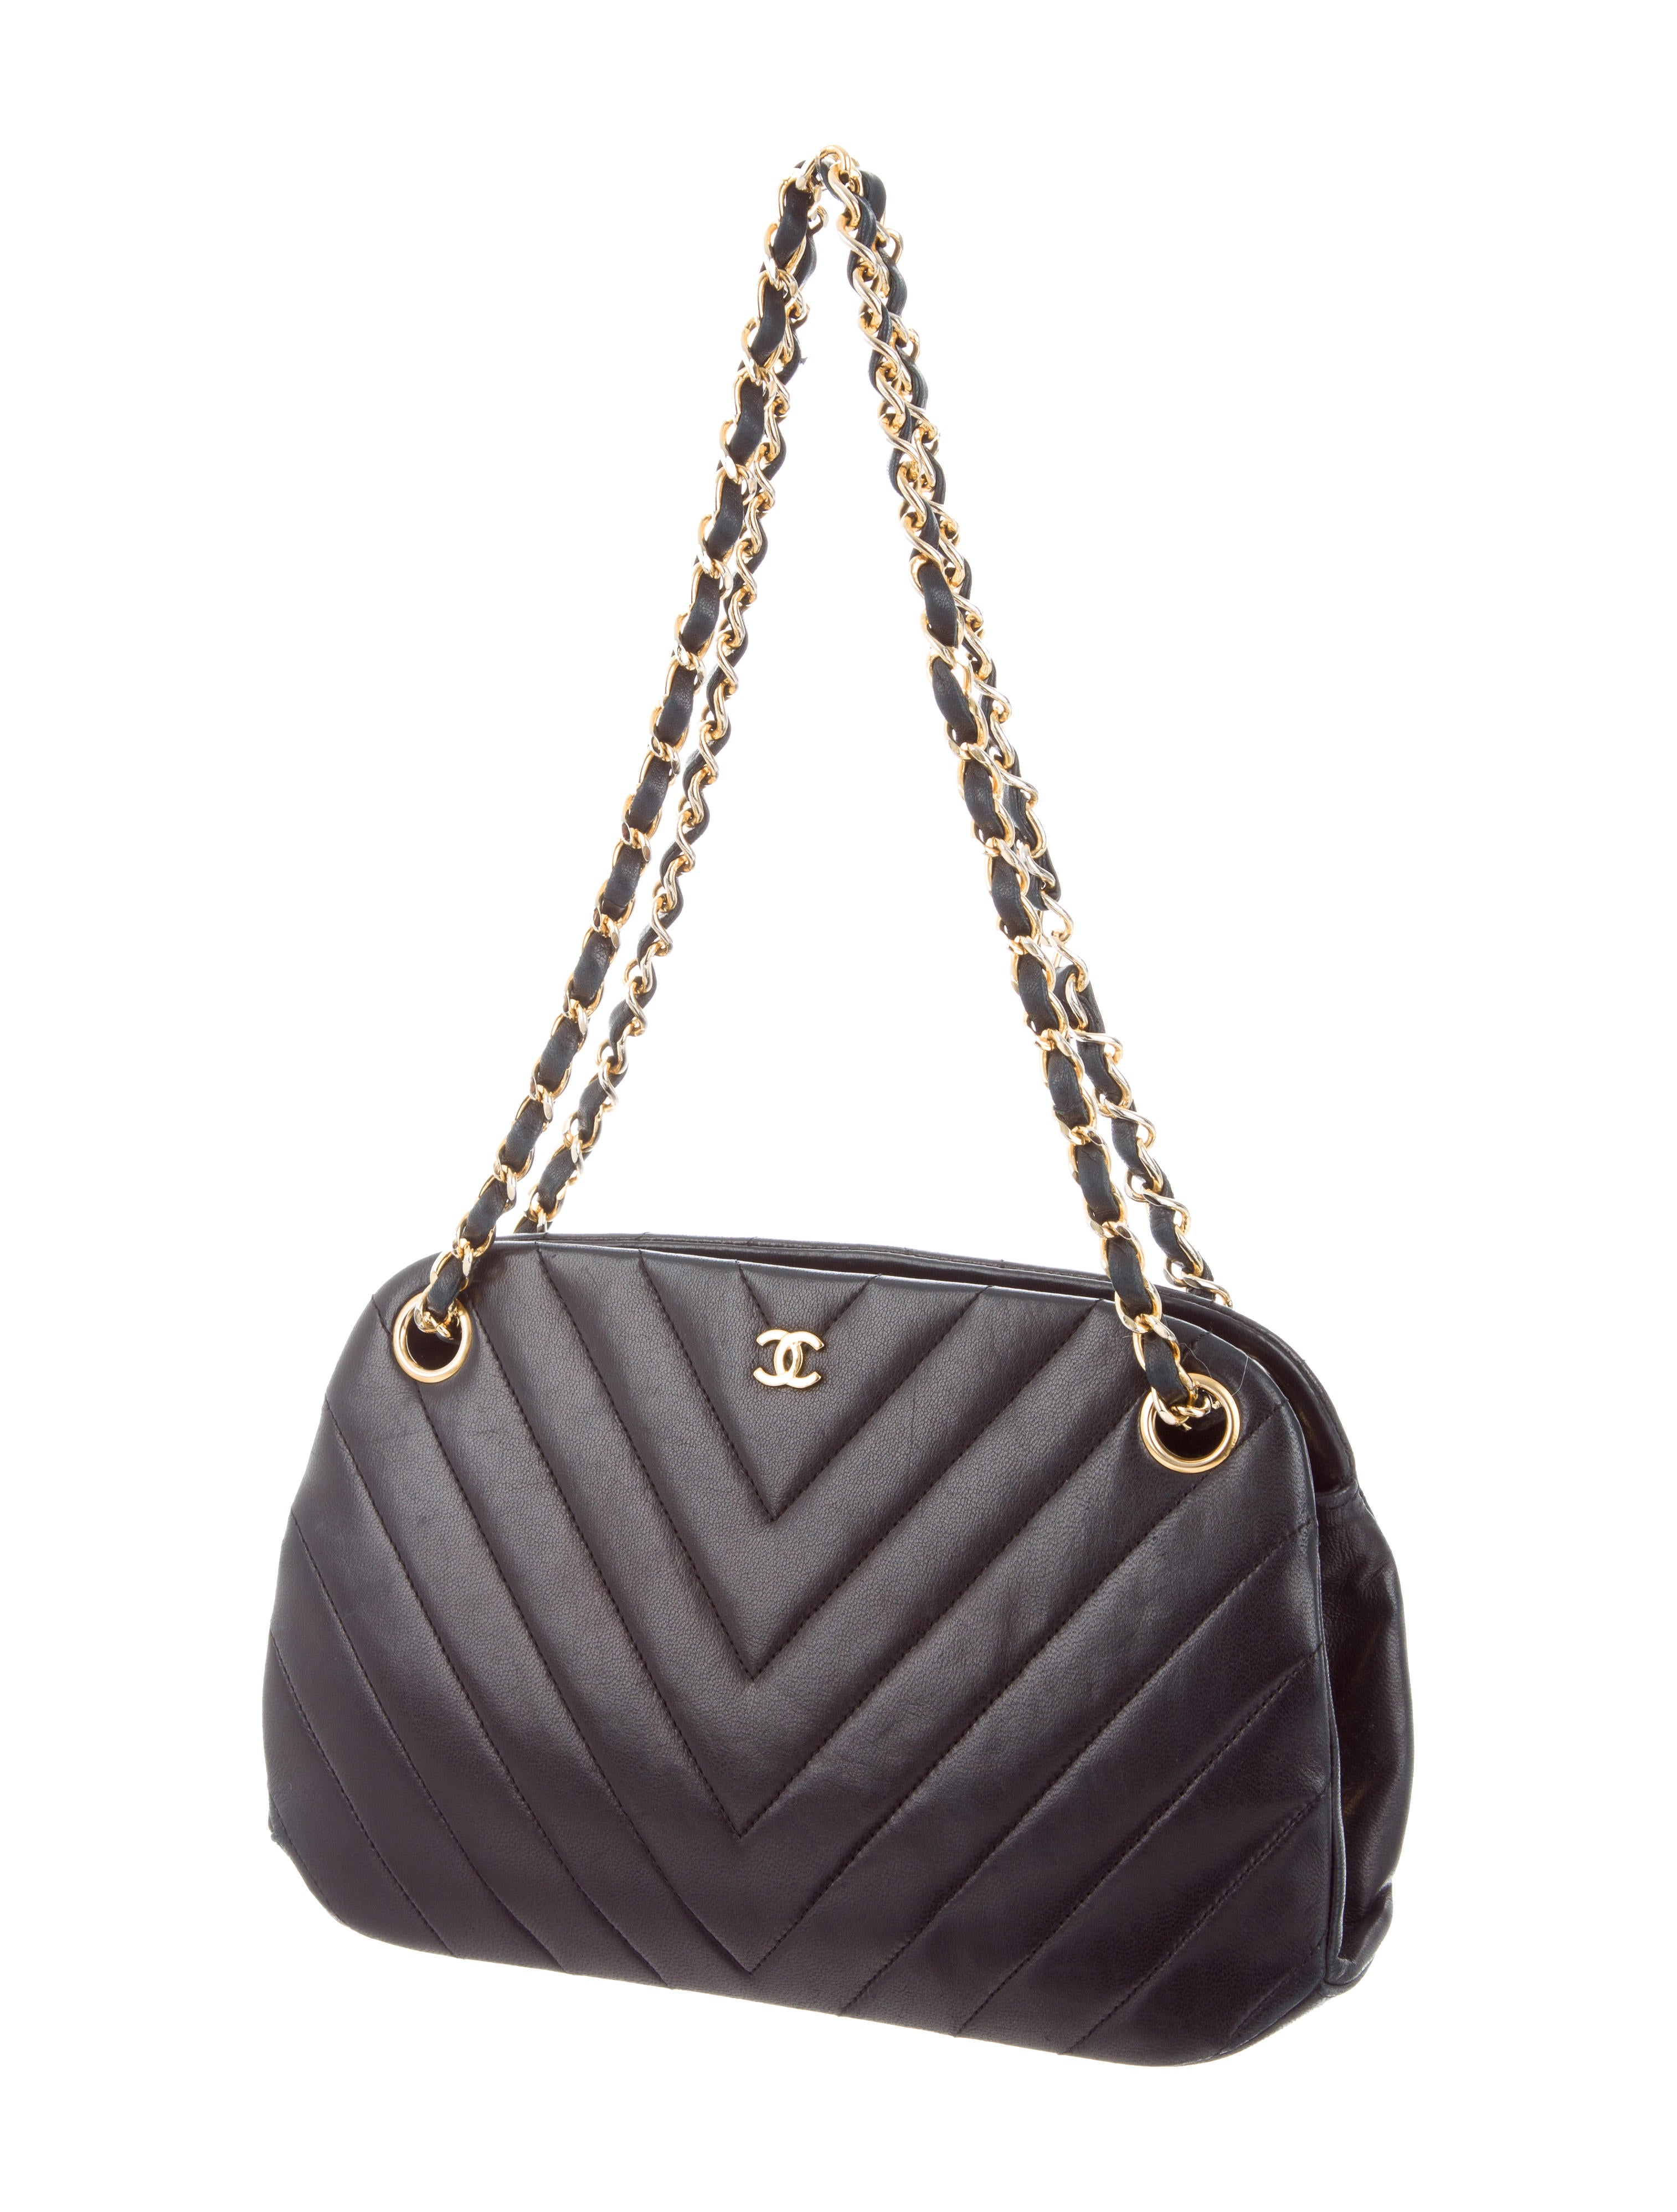 769c22784165 Chanel Purses Handbags Lambskin | Stanford Center for Opportunity ...